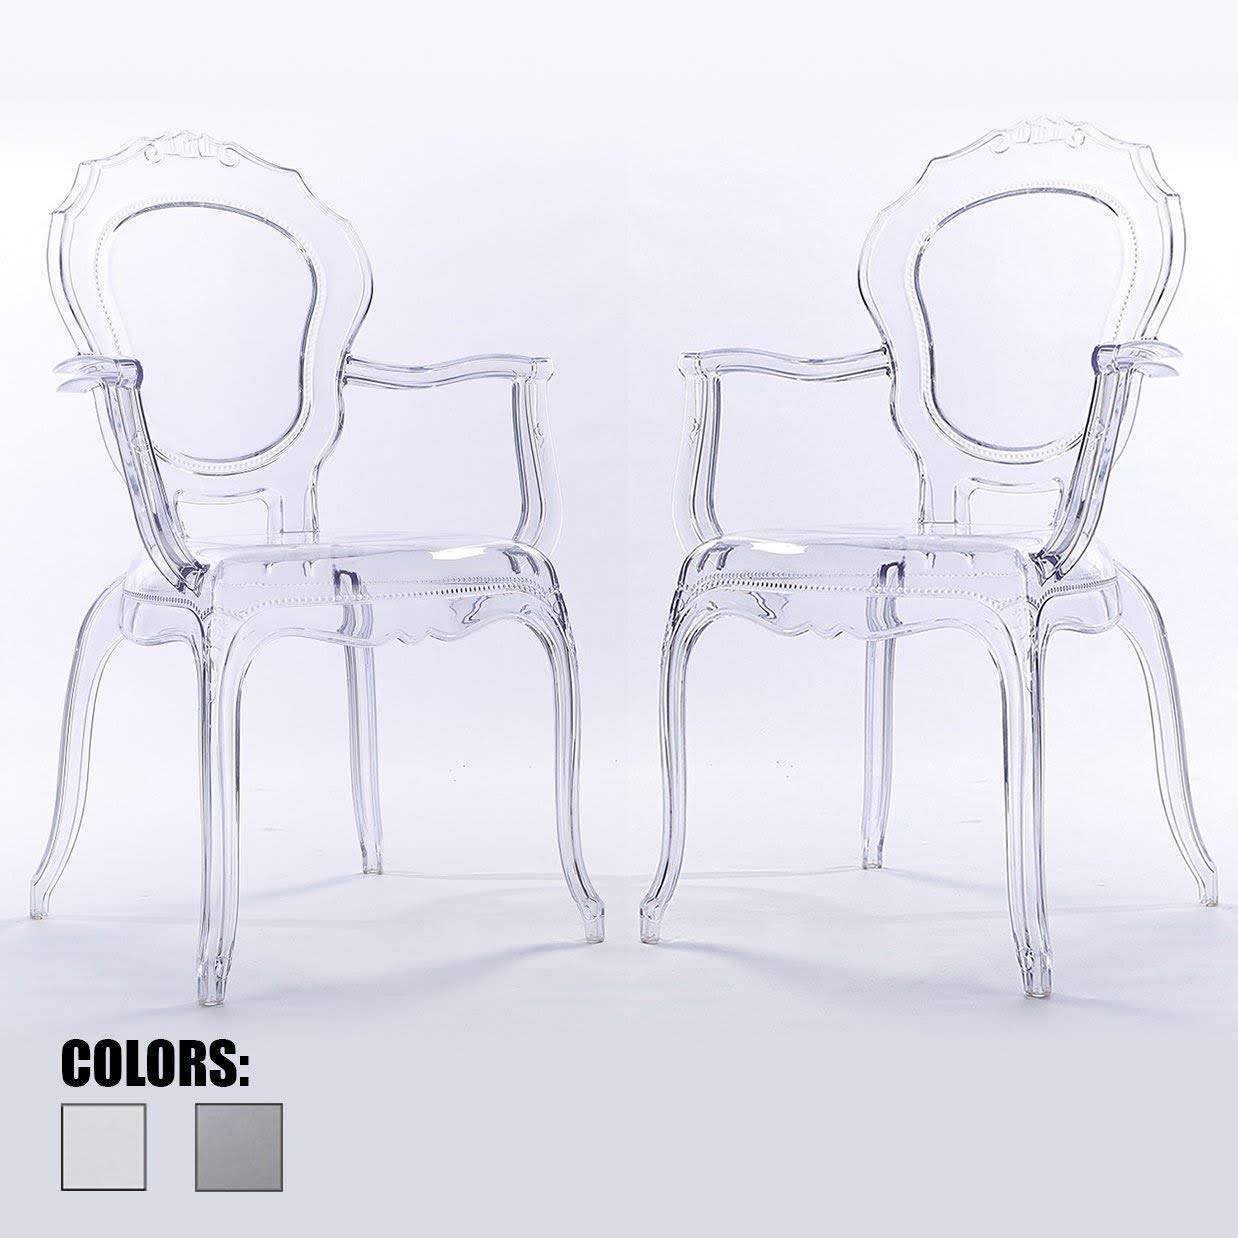 2xhome – Belle Style Ghost Chair Ghost Armchair Dining Room Chair – Armchair Lounge Chair Seat Higher Fine Modern Designer Artistic Classic Mold Clear Jorge X2